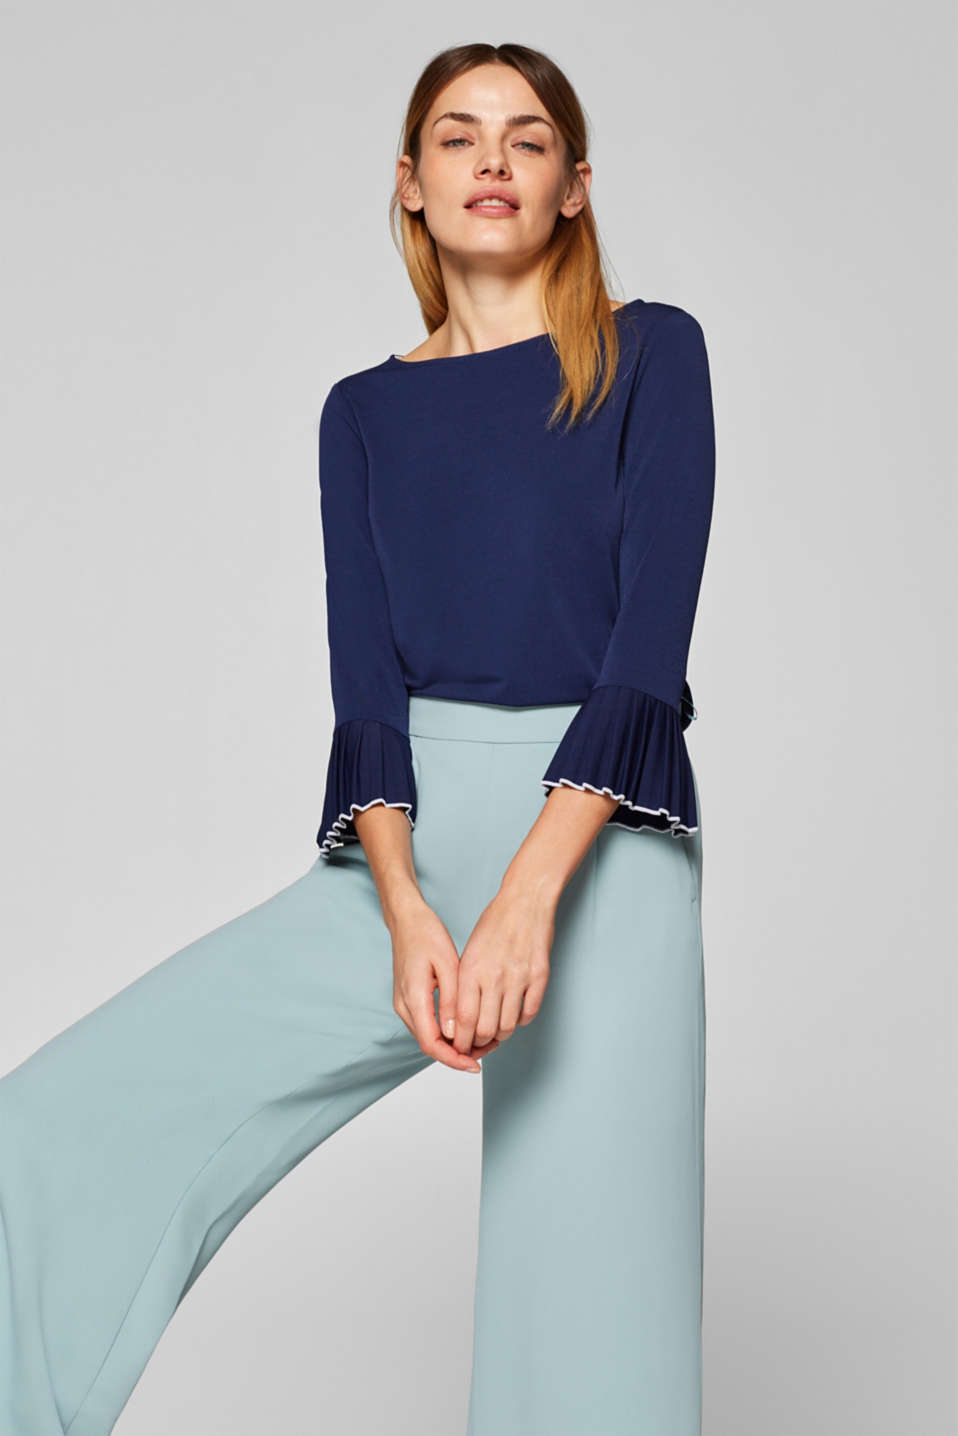 Esprit - Crêpe jersey top with pleated details